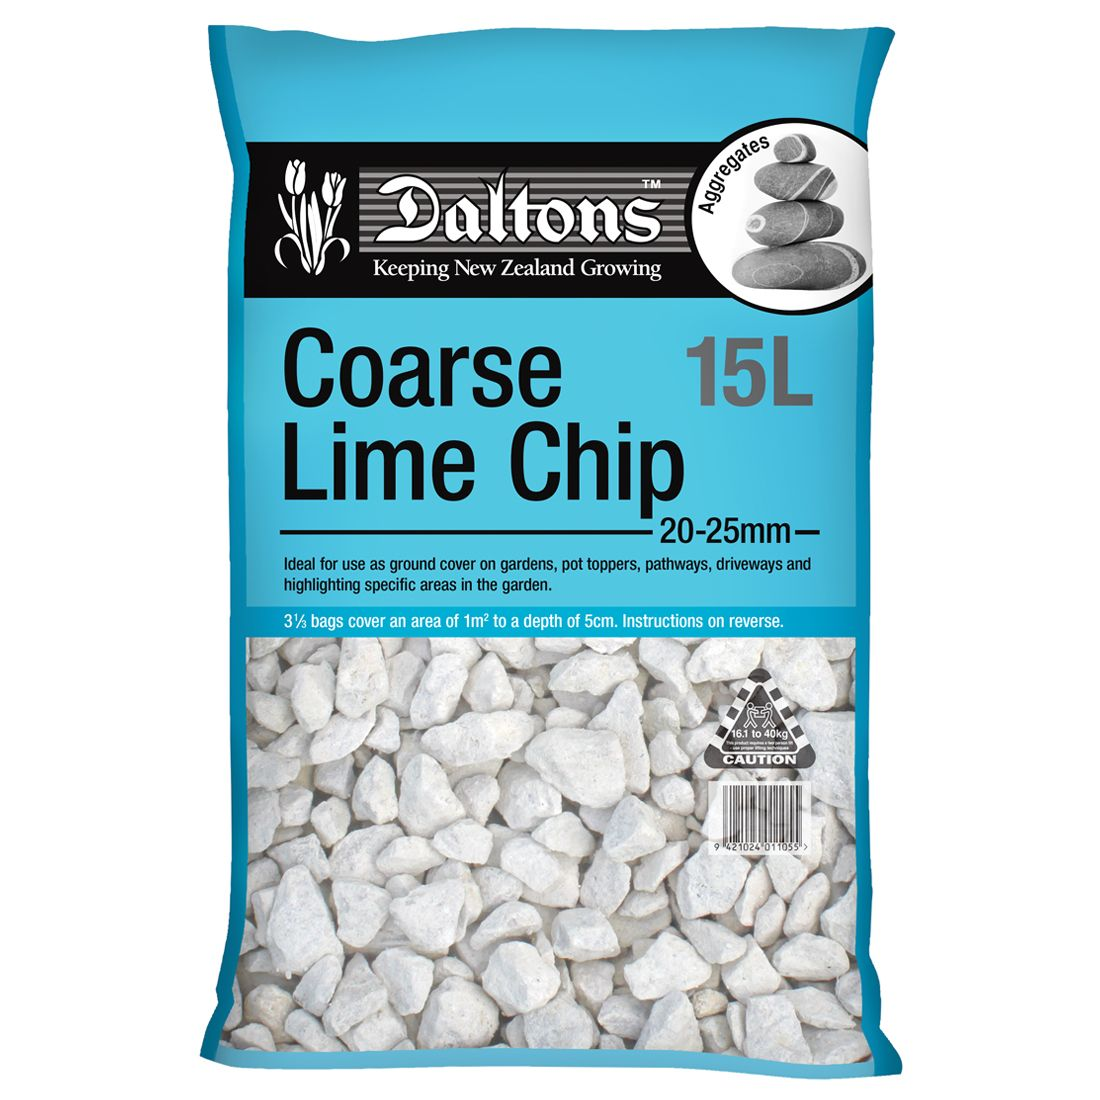 Coarse Lime Chip 15L Bag